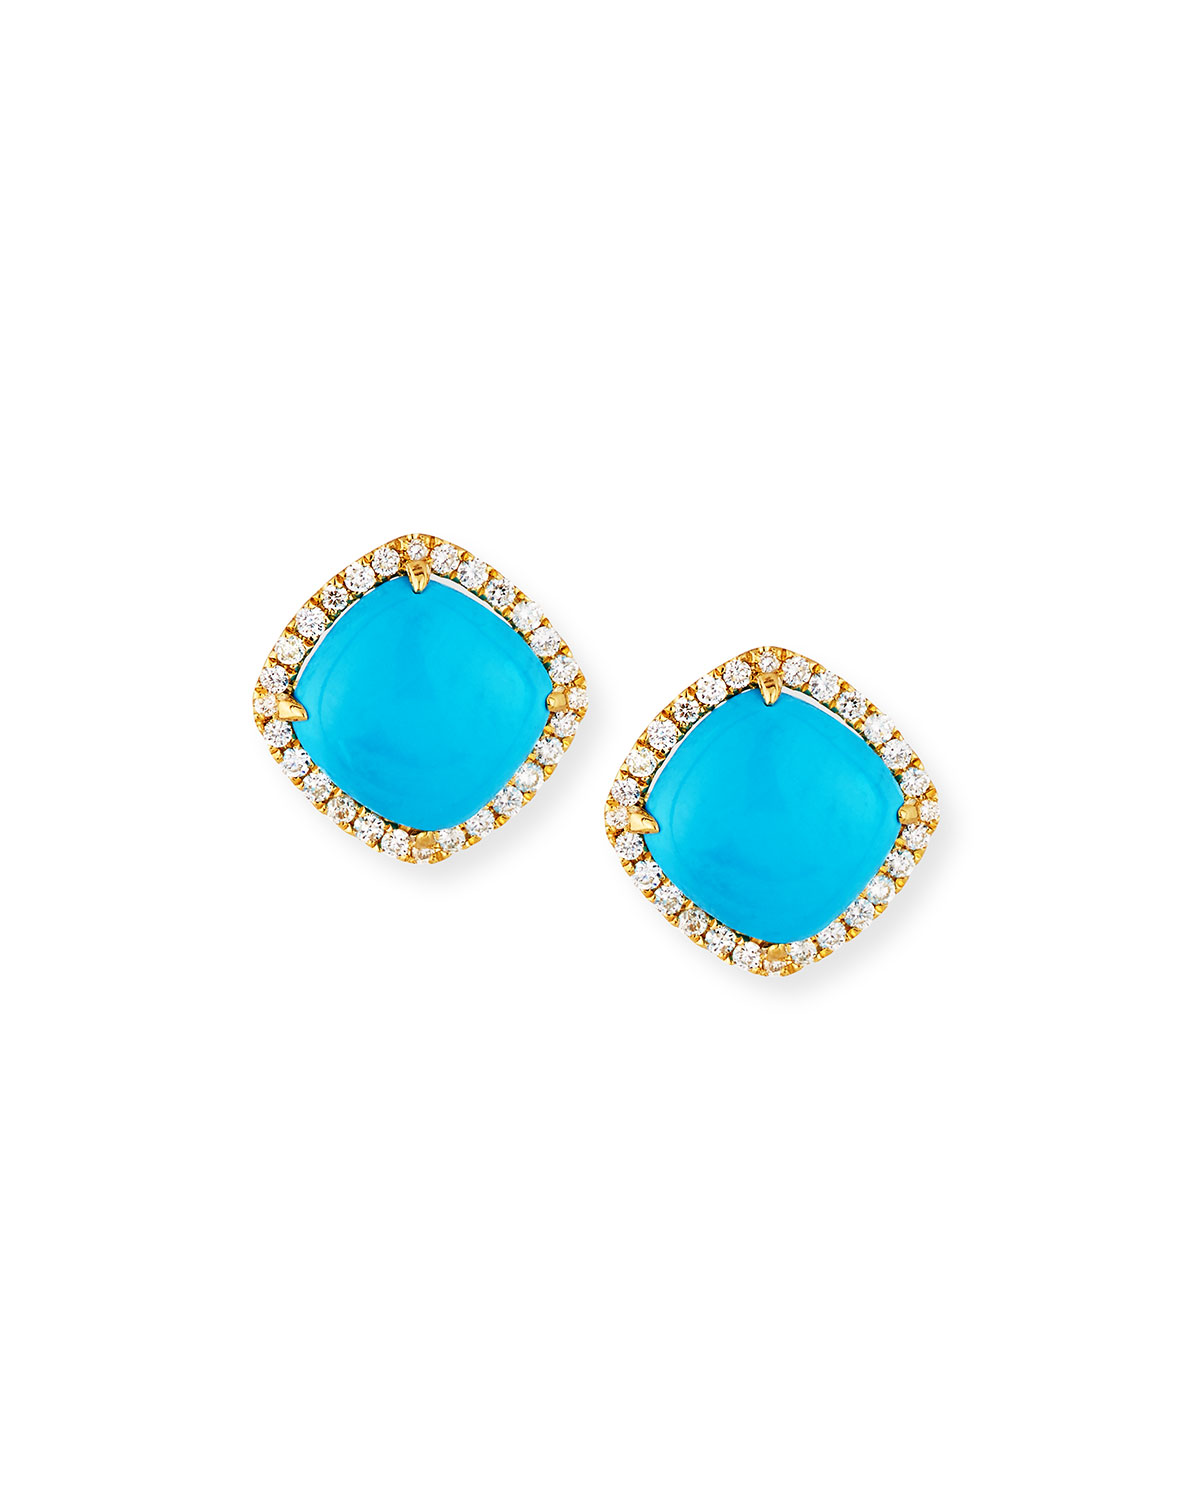 18k Gold Turquoise Diamond Stud Earrings